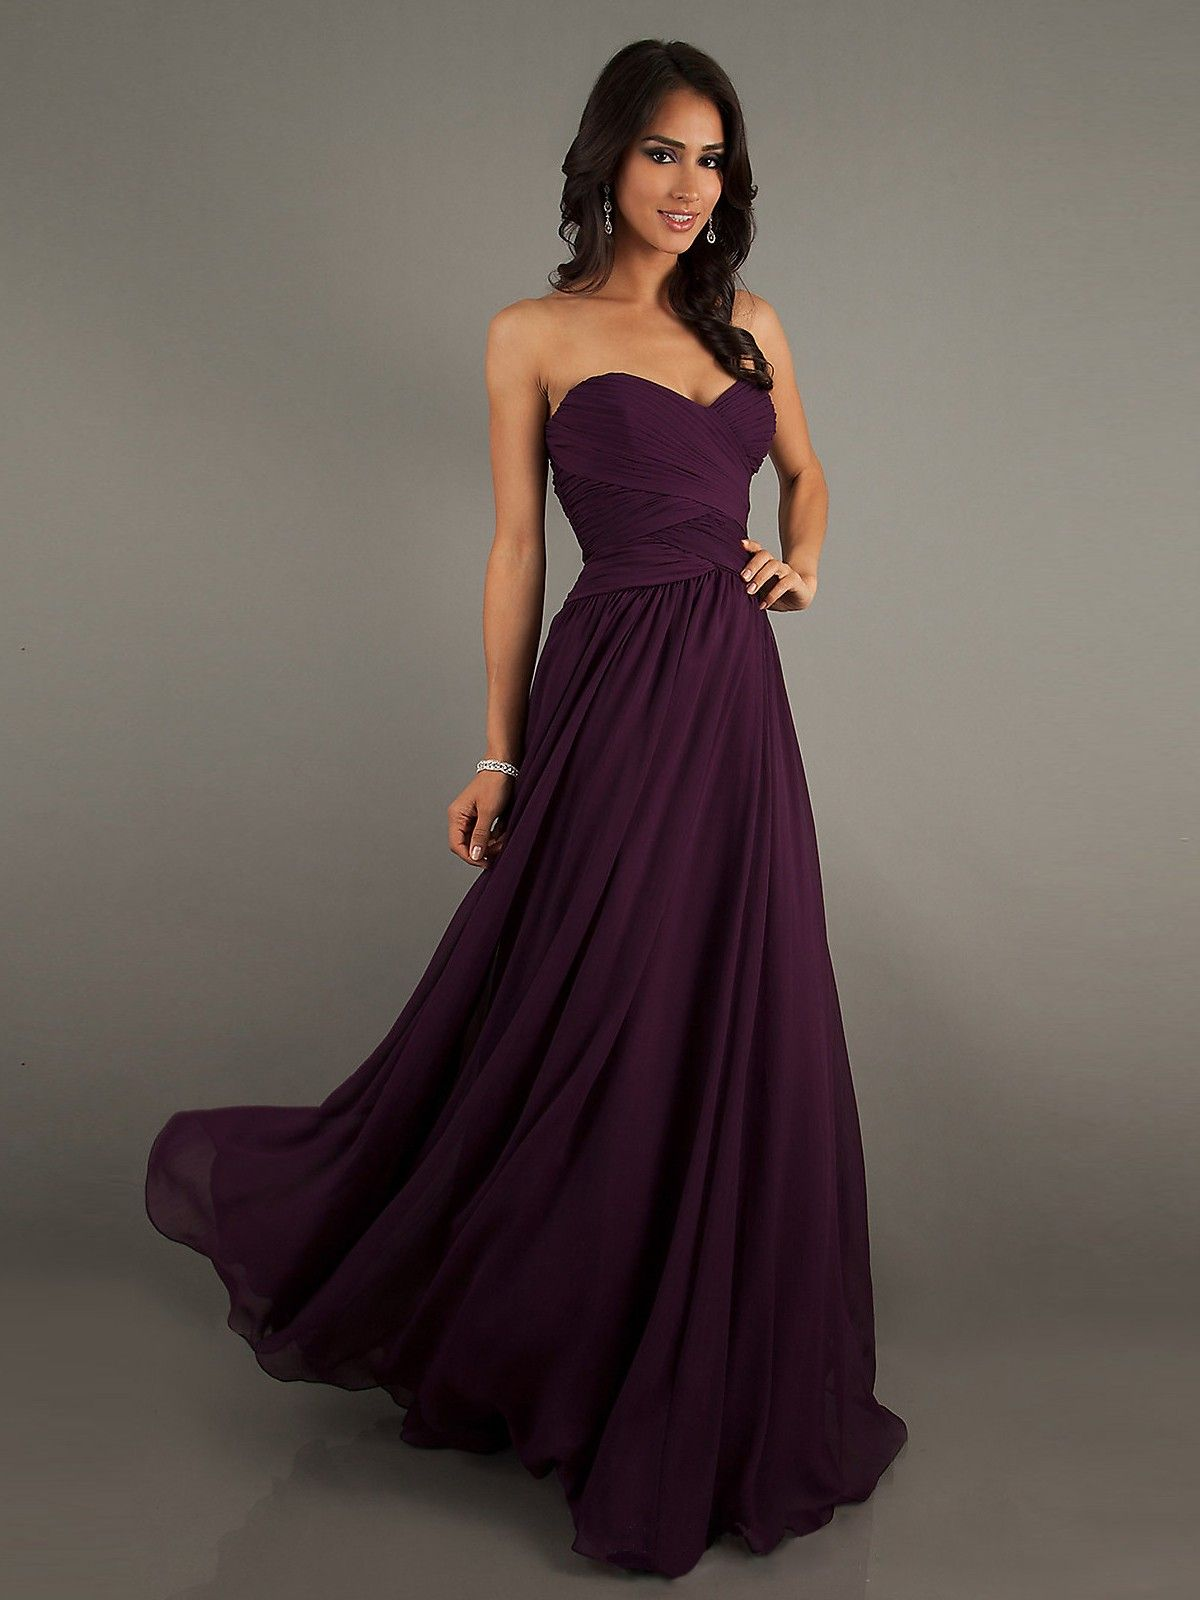 Stunning chiffon purple prom dress spectacular gowns for big event